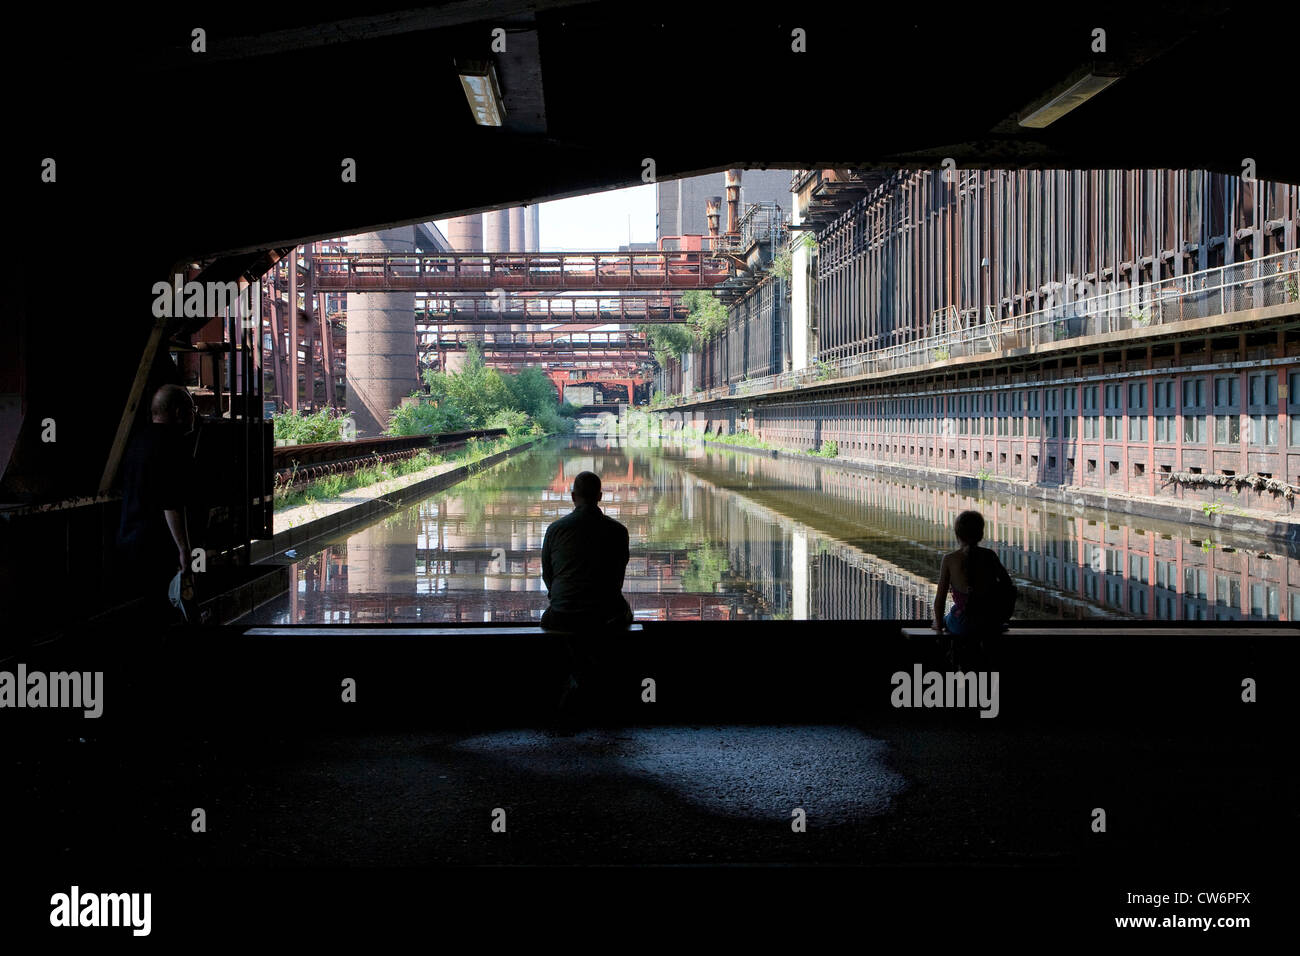 people looking at Kokerei Zollverein, Essen-Katernberg, Germany, North Rhine-Westphalia, Ruhr Area, Essen - Stock Image